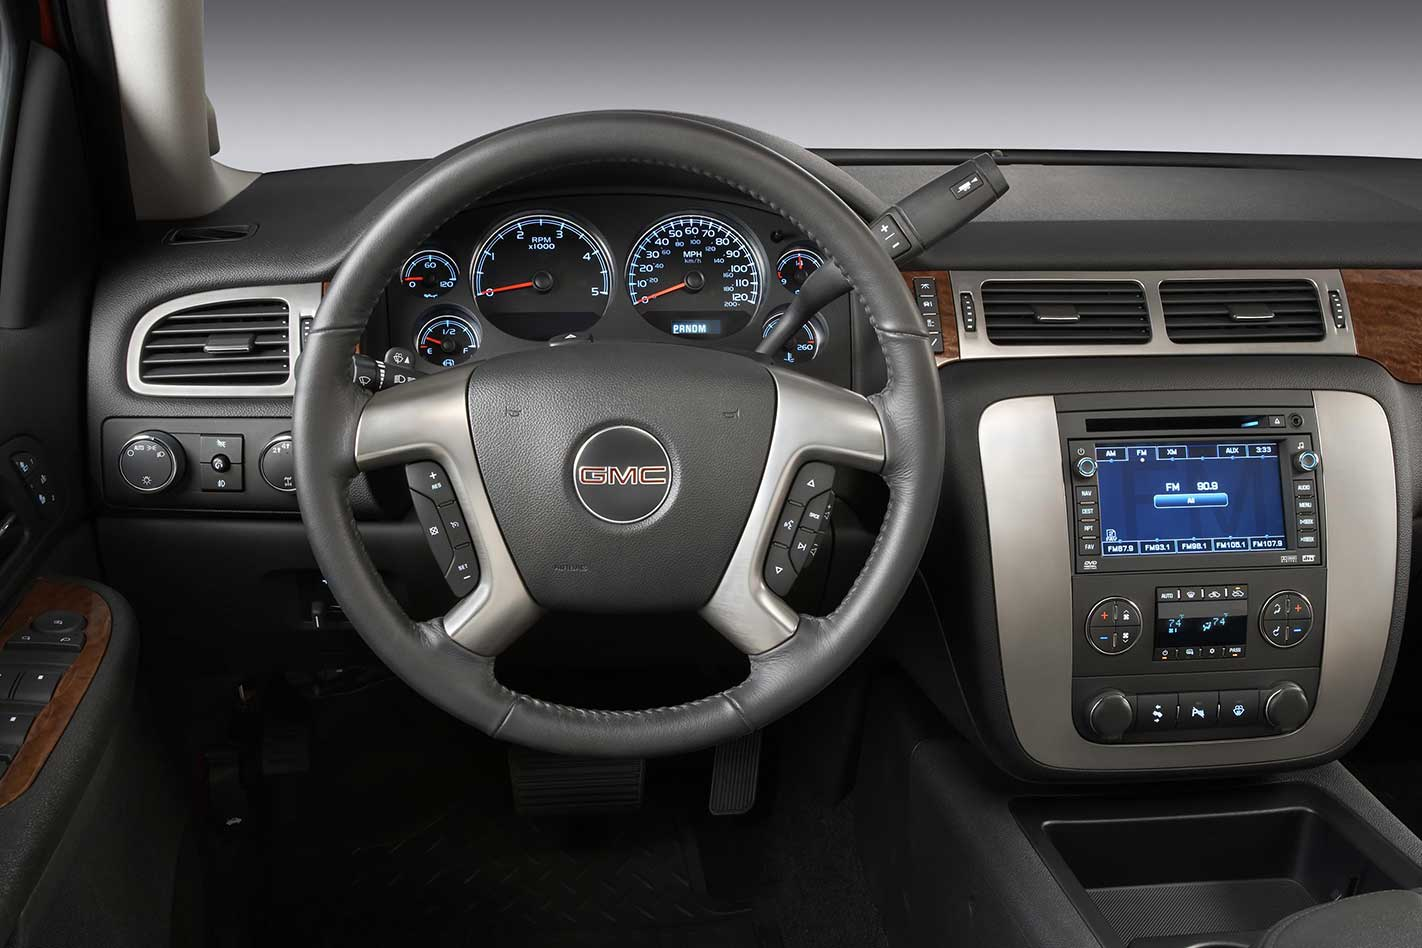 GM recalls almost 7m vehicles worldwide for defective Takata airbags